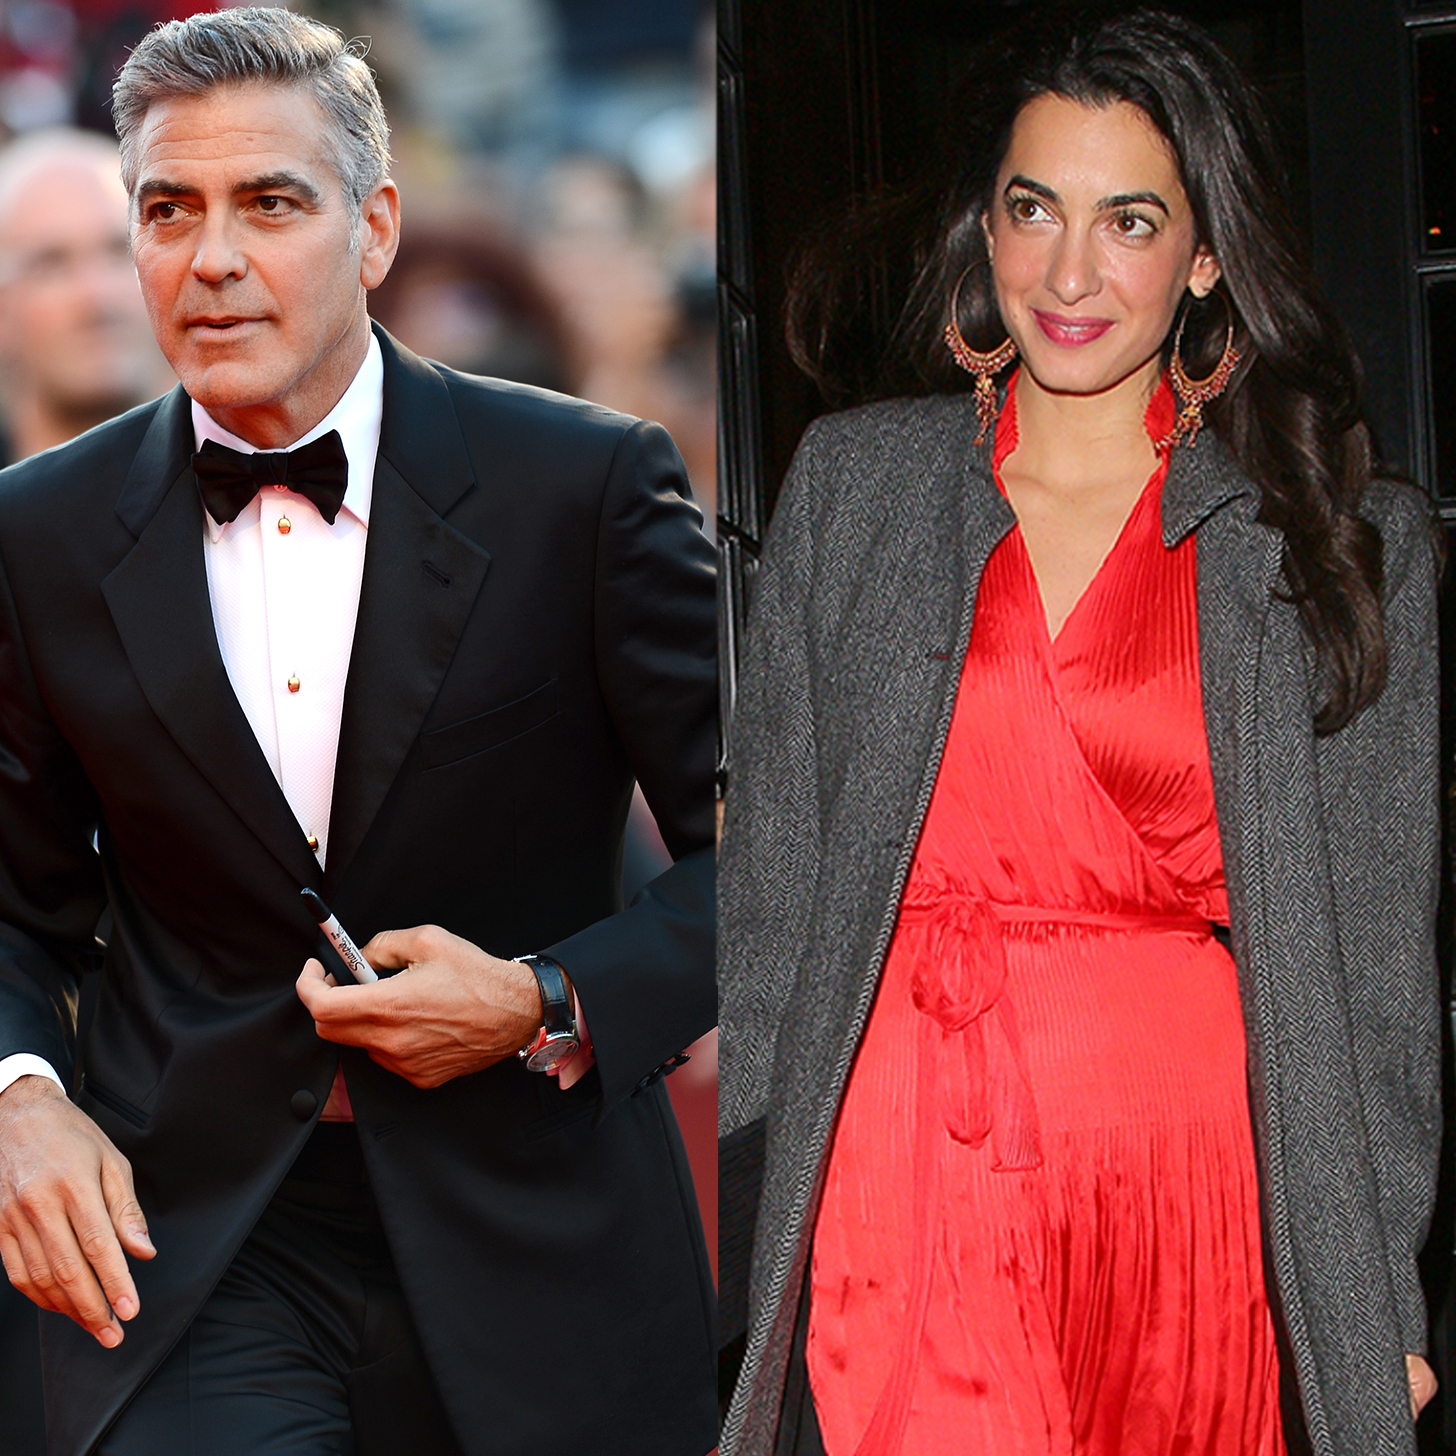 George clooney fiance age - photo#10